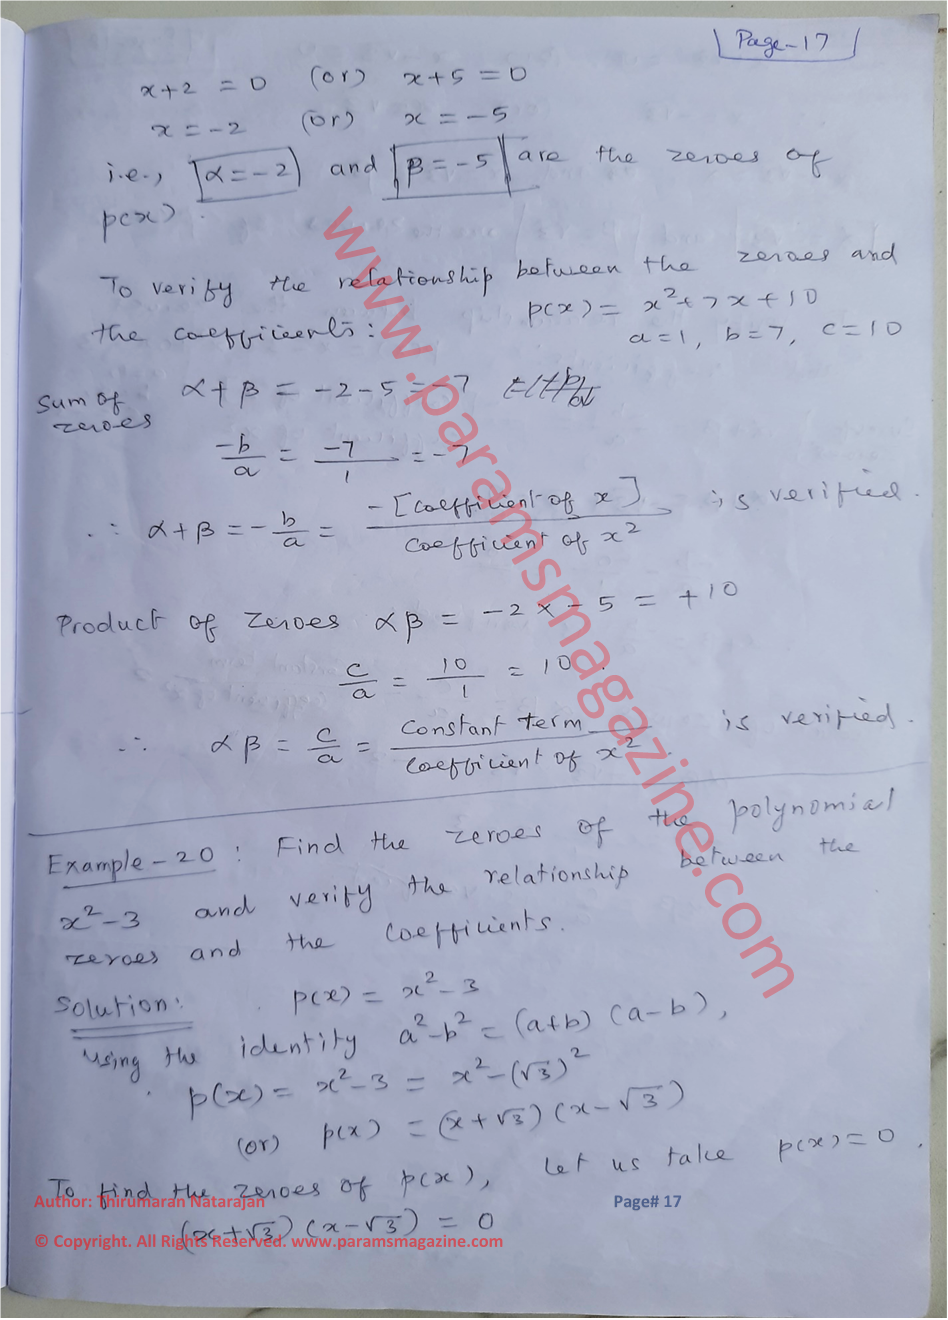 Class-10 - Polynomials - Notes - Page-17